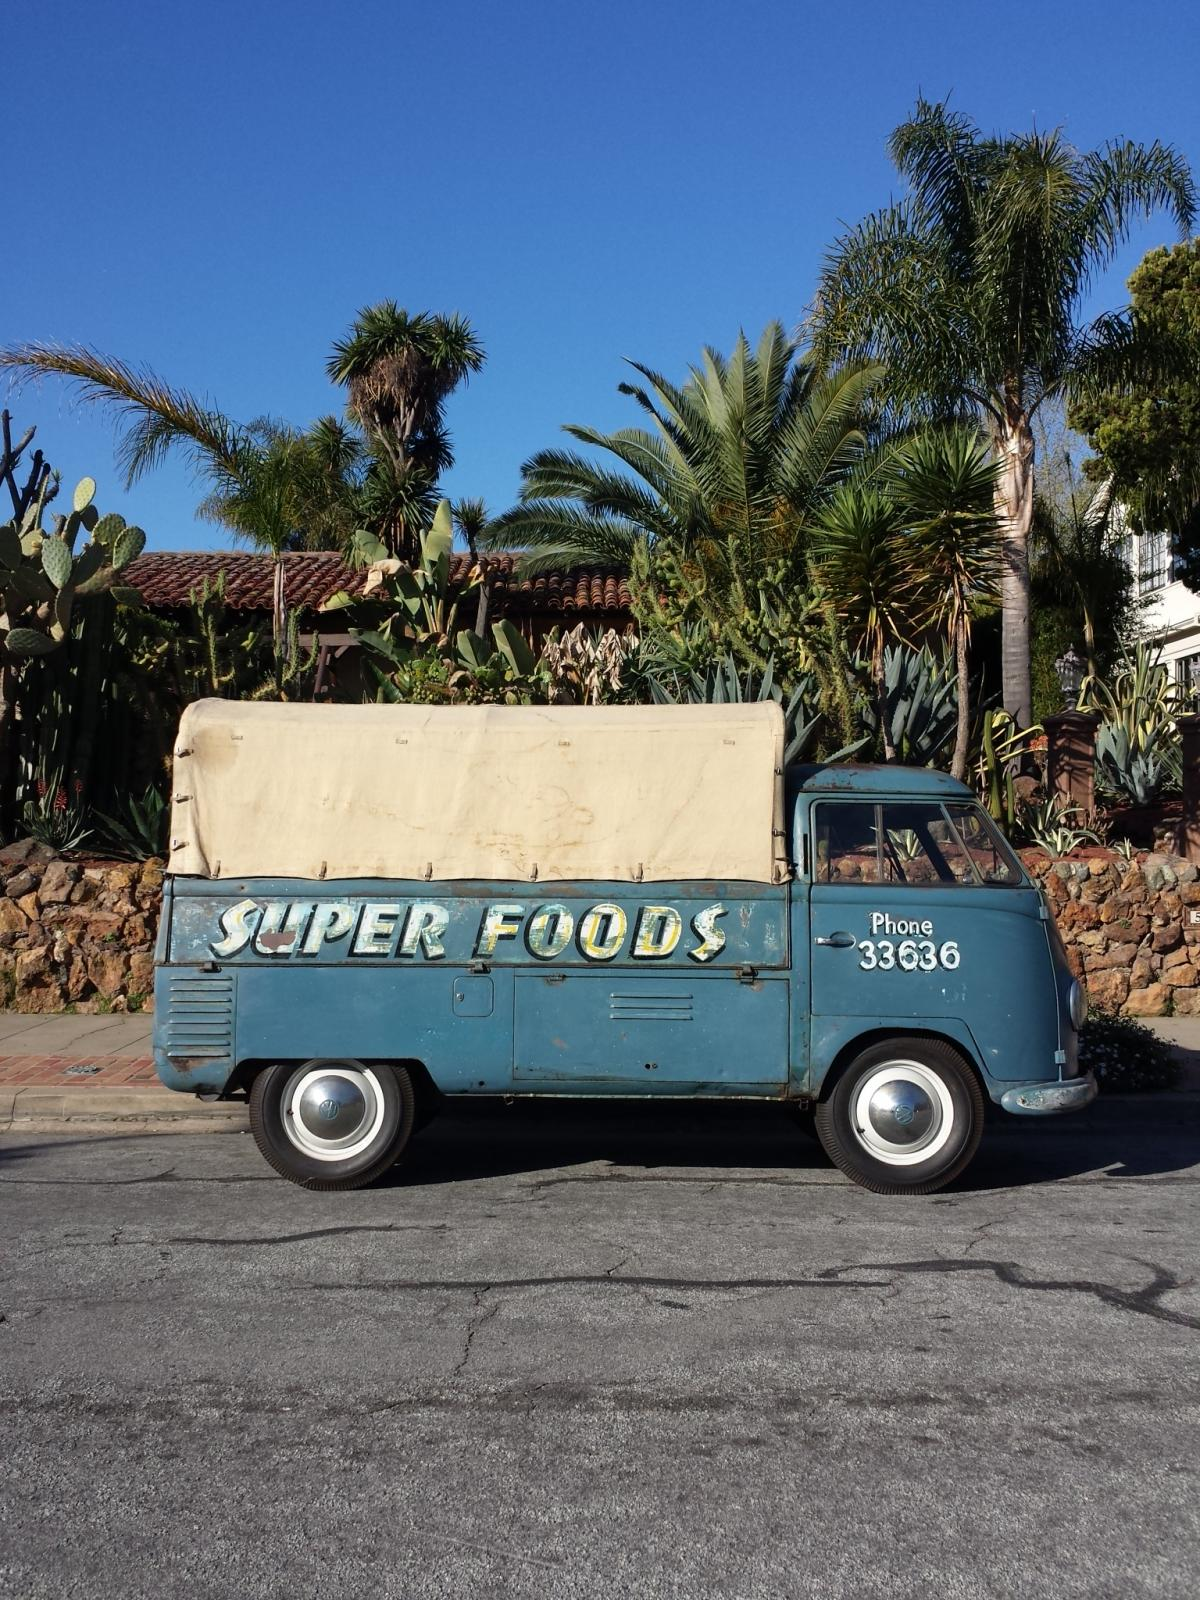 super foods got some love today!